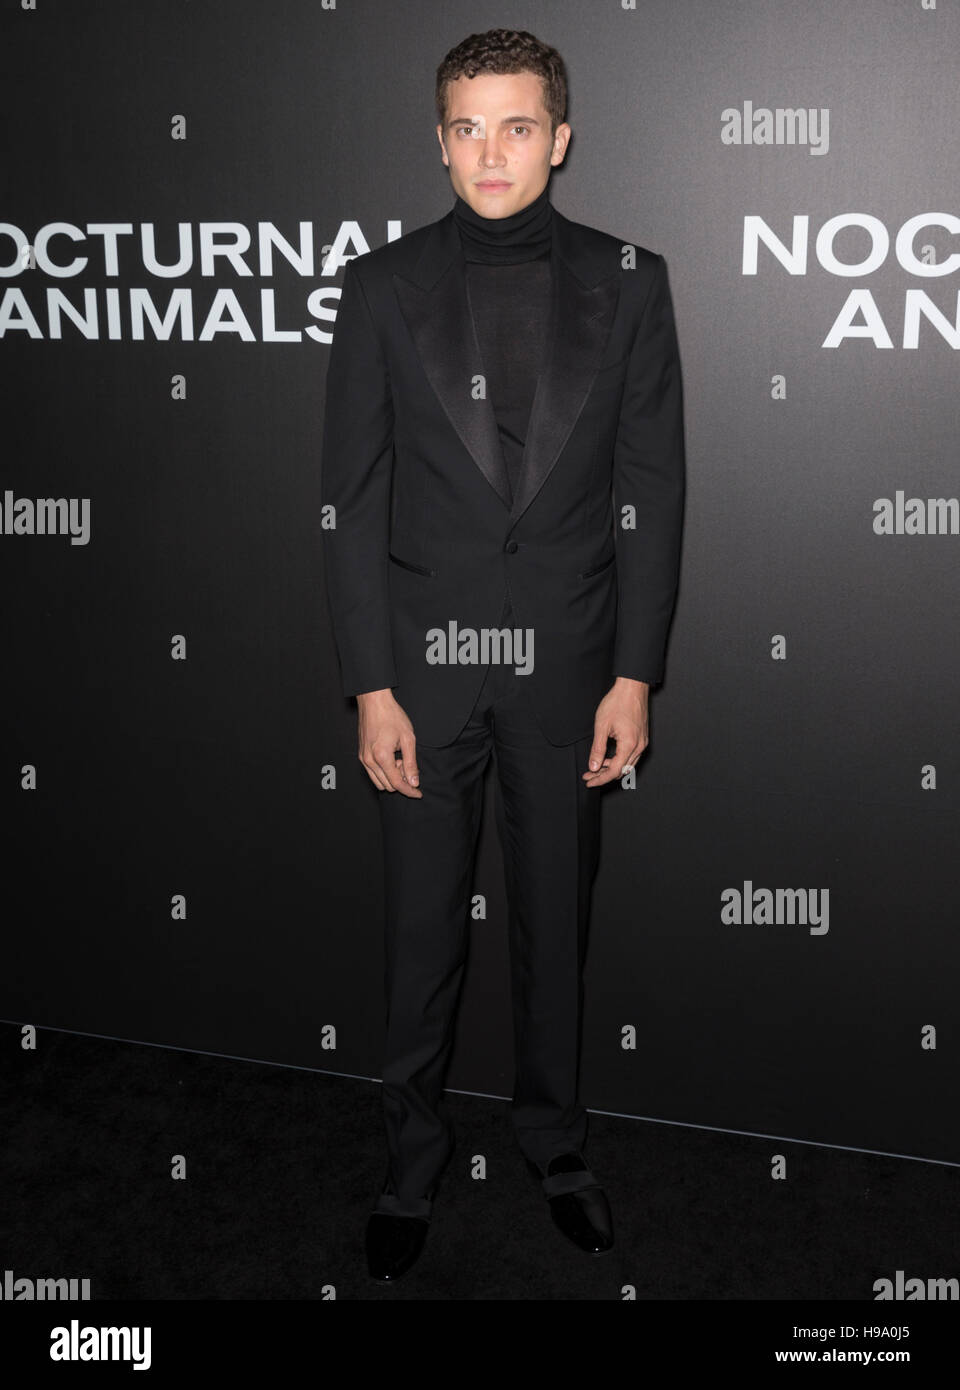 New York City, USA - November 17, 2016: Actor Karl Glusman attends the 'Nocturnal Animals' New York premiere - Stock Image